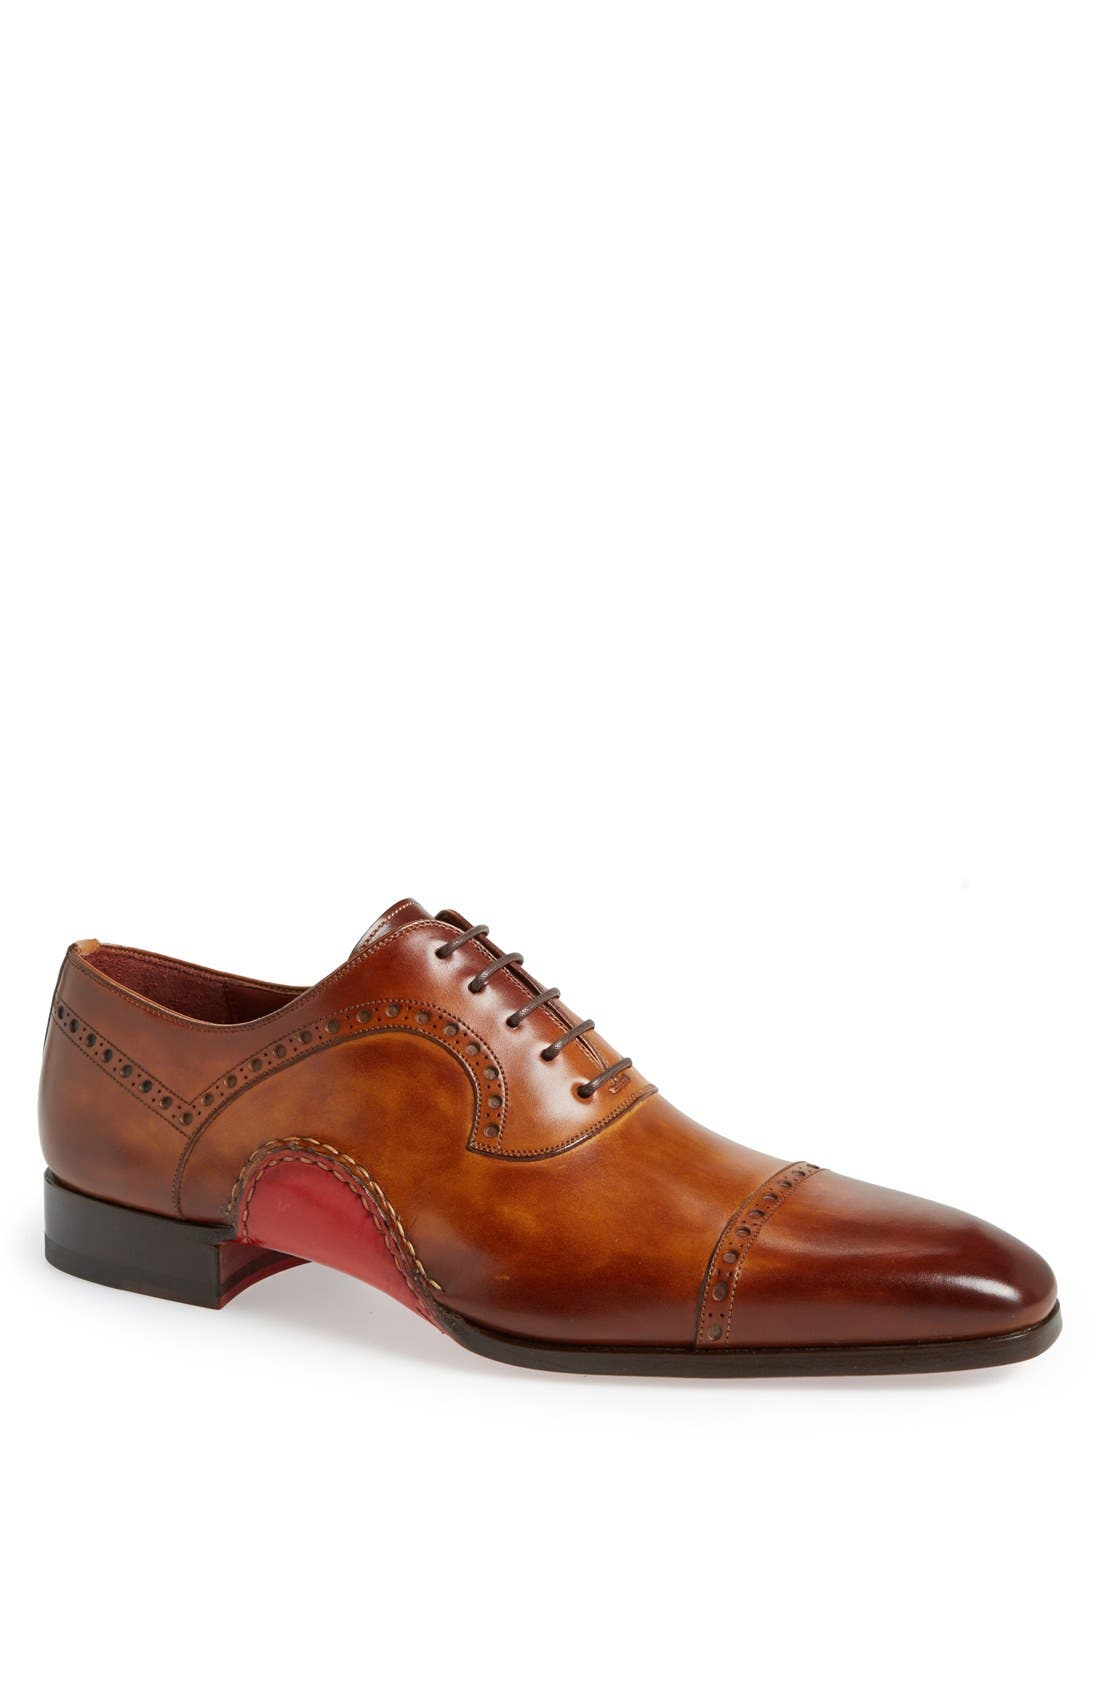 Alternate Image 1 Selected - Magnanni 'Cris' Cap Toe Oxford